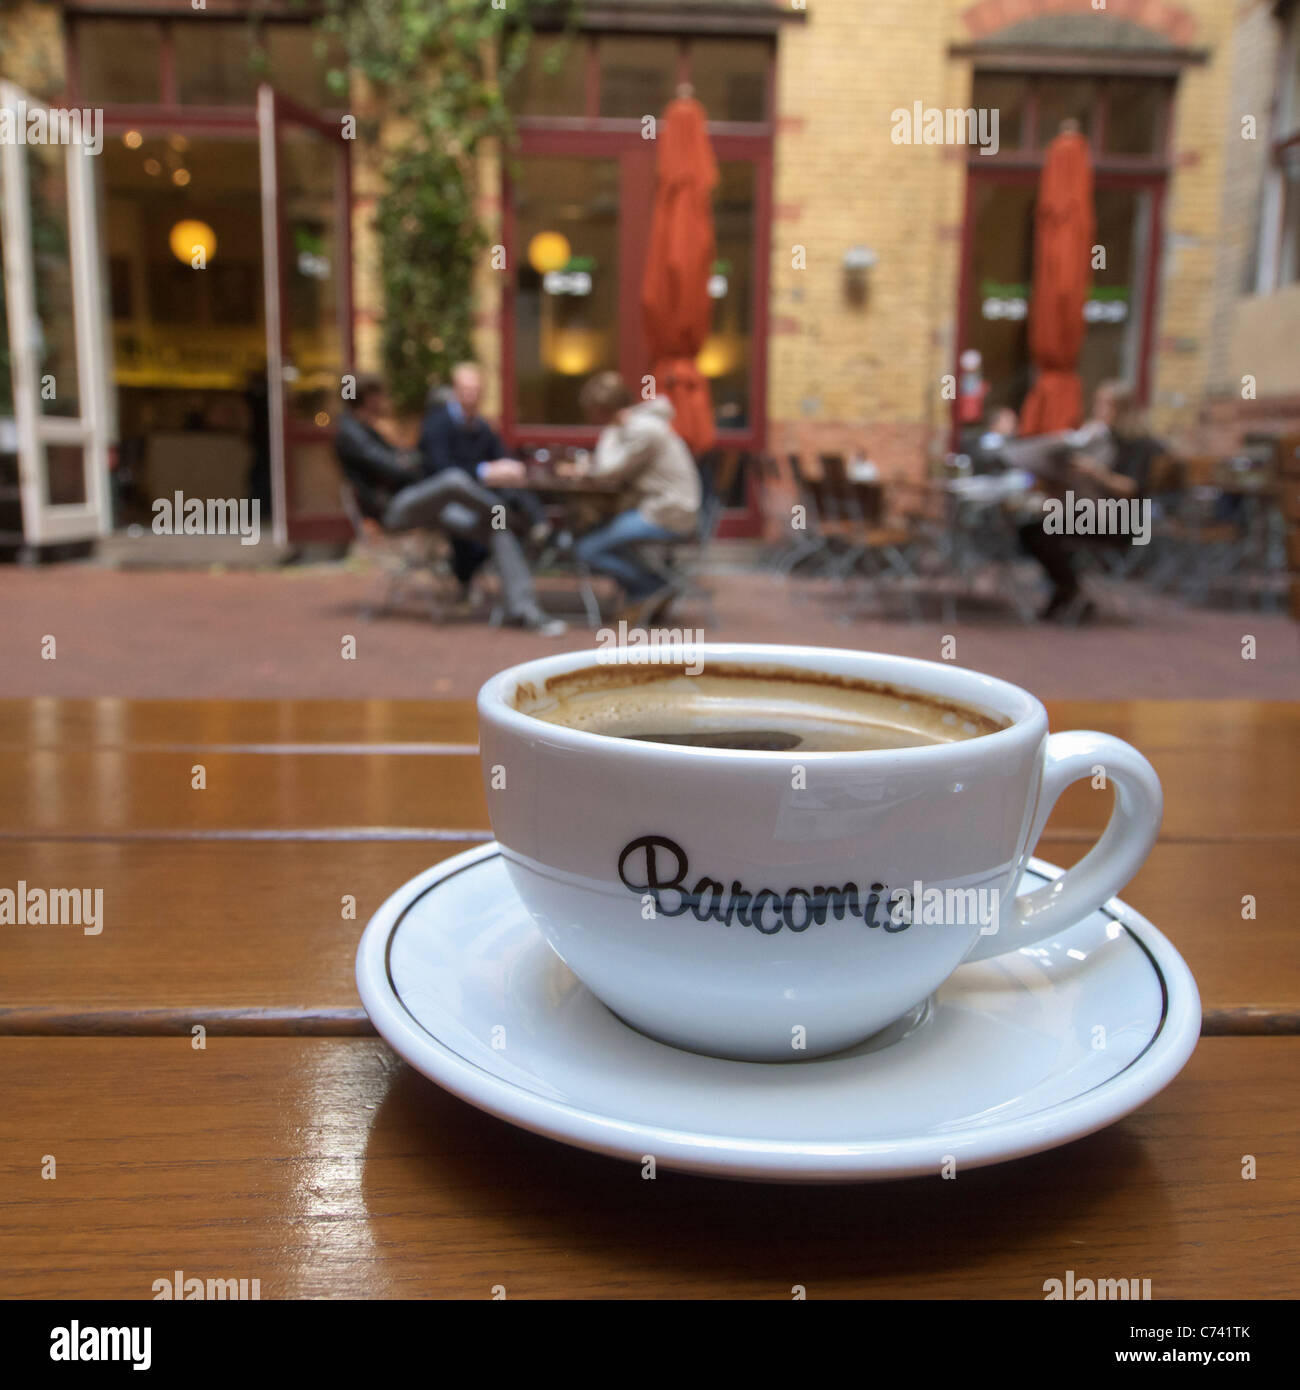 cup of coffee at Barcomis cafe in Sophie-Gips courtyard in Mitte district of Berlin in Germany - Stock Image